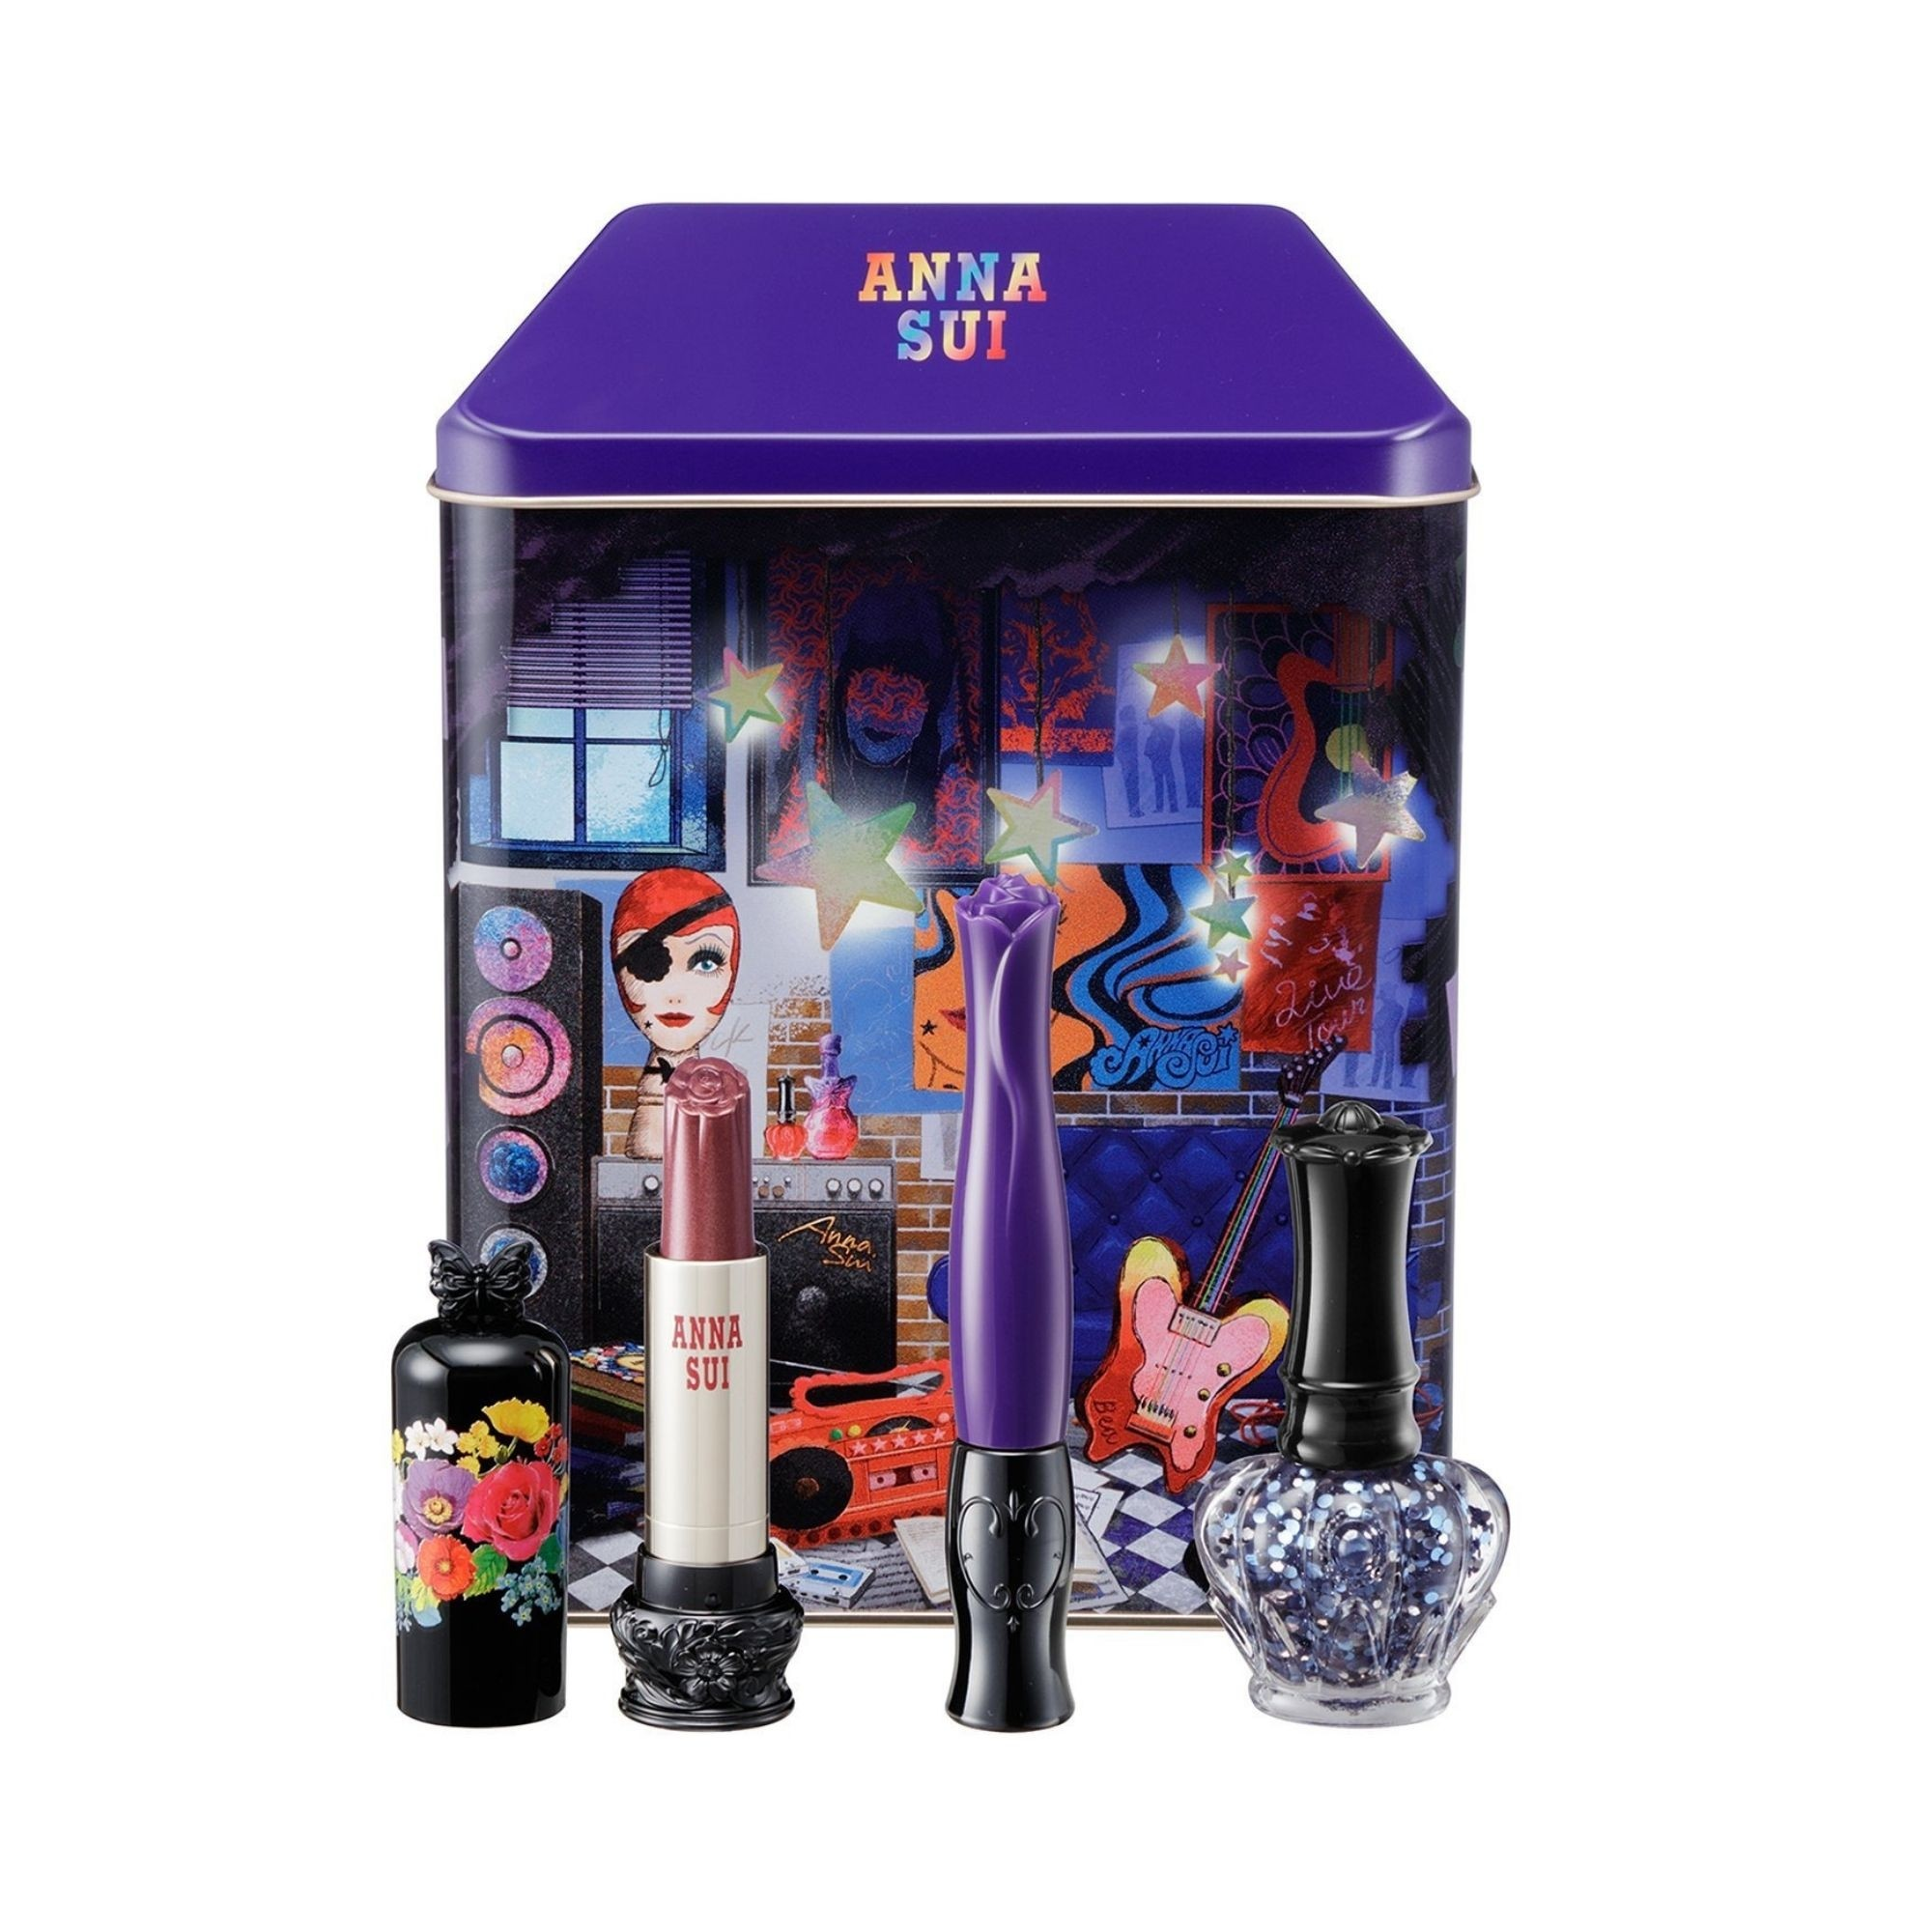 Anna Sui Dolly Head Makeup Coffret Set Bea Box with products